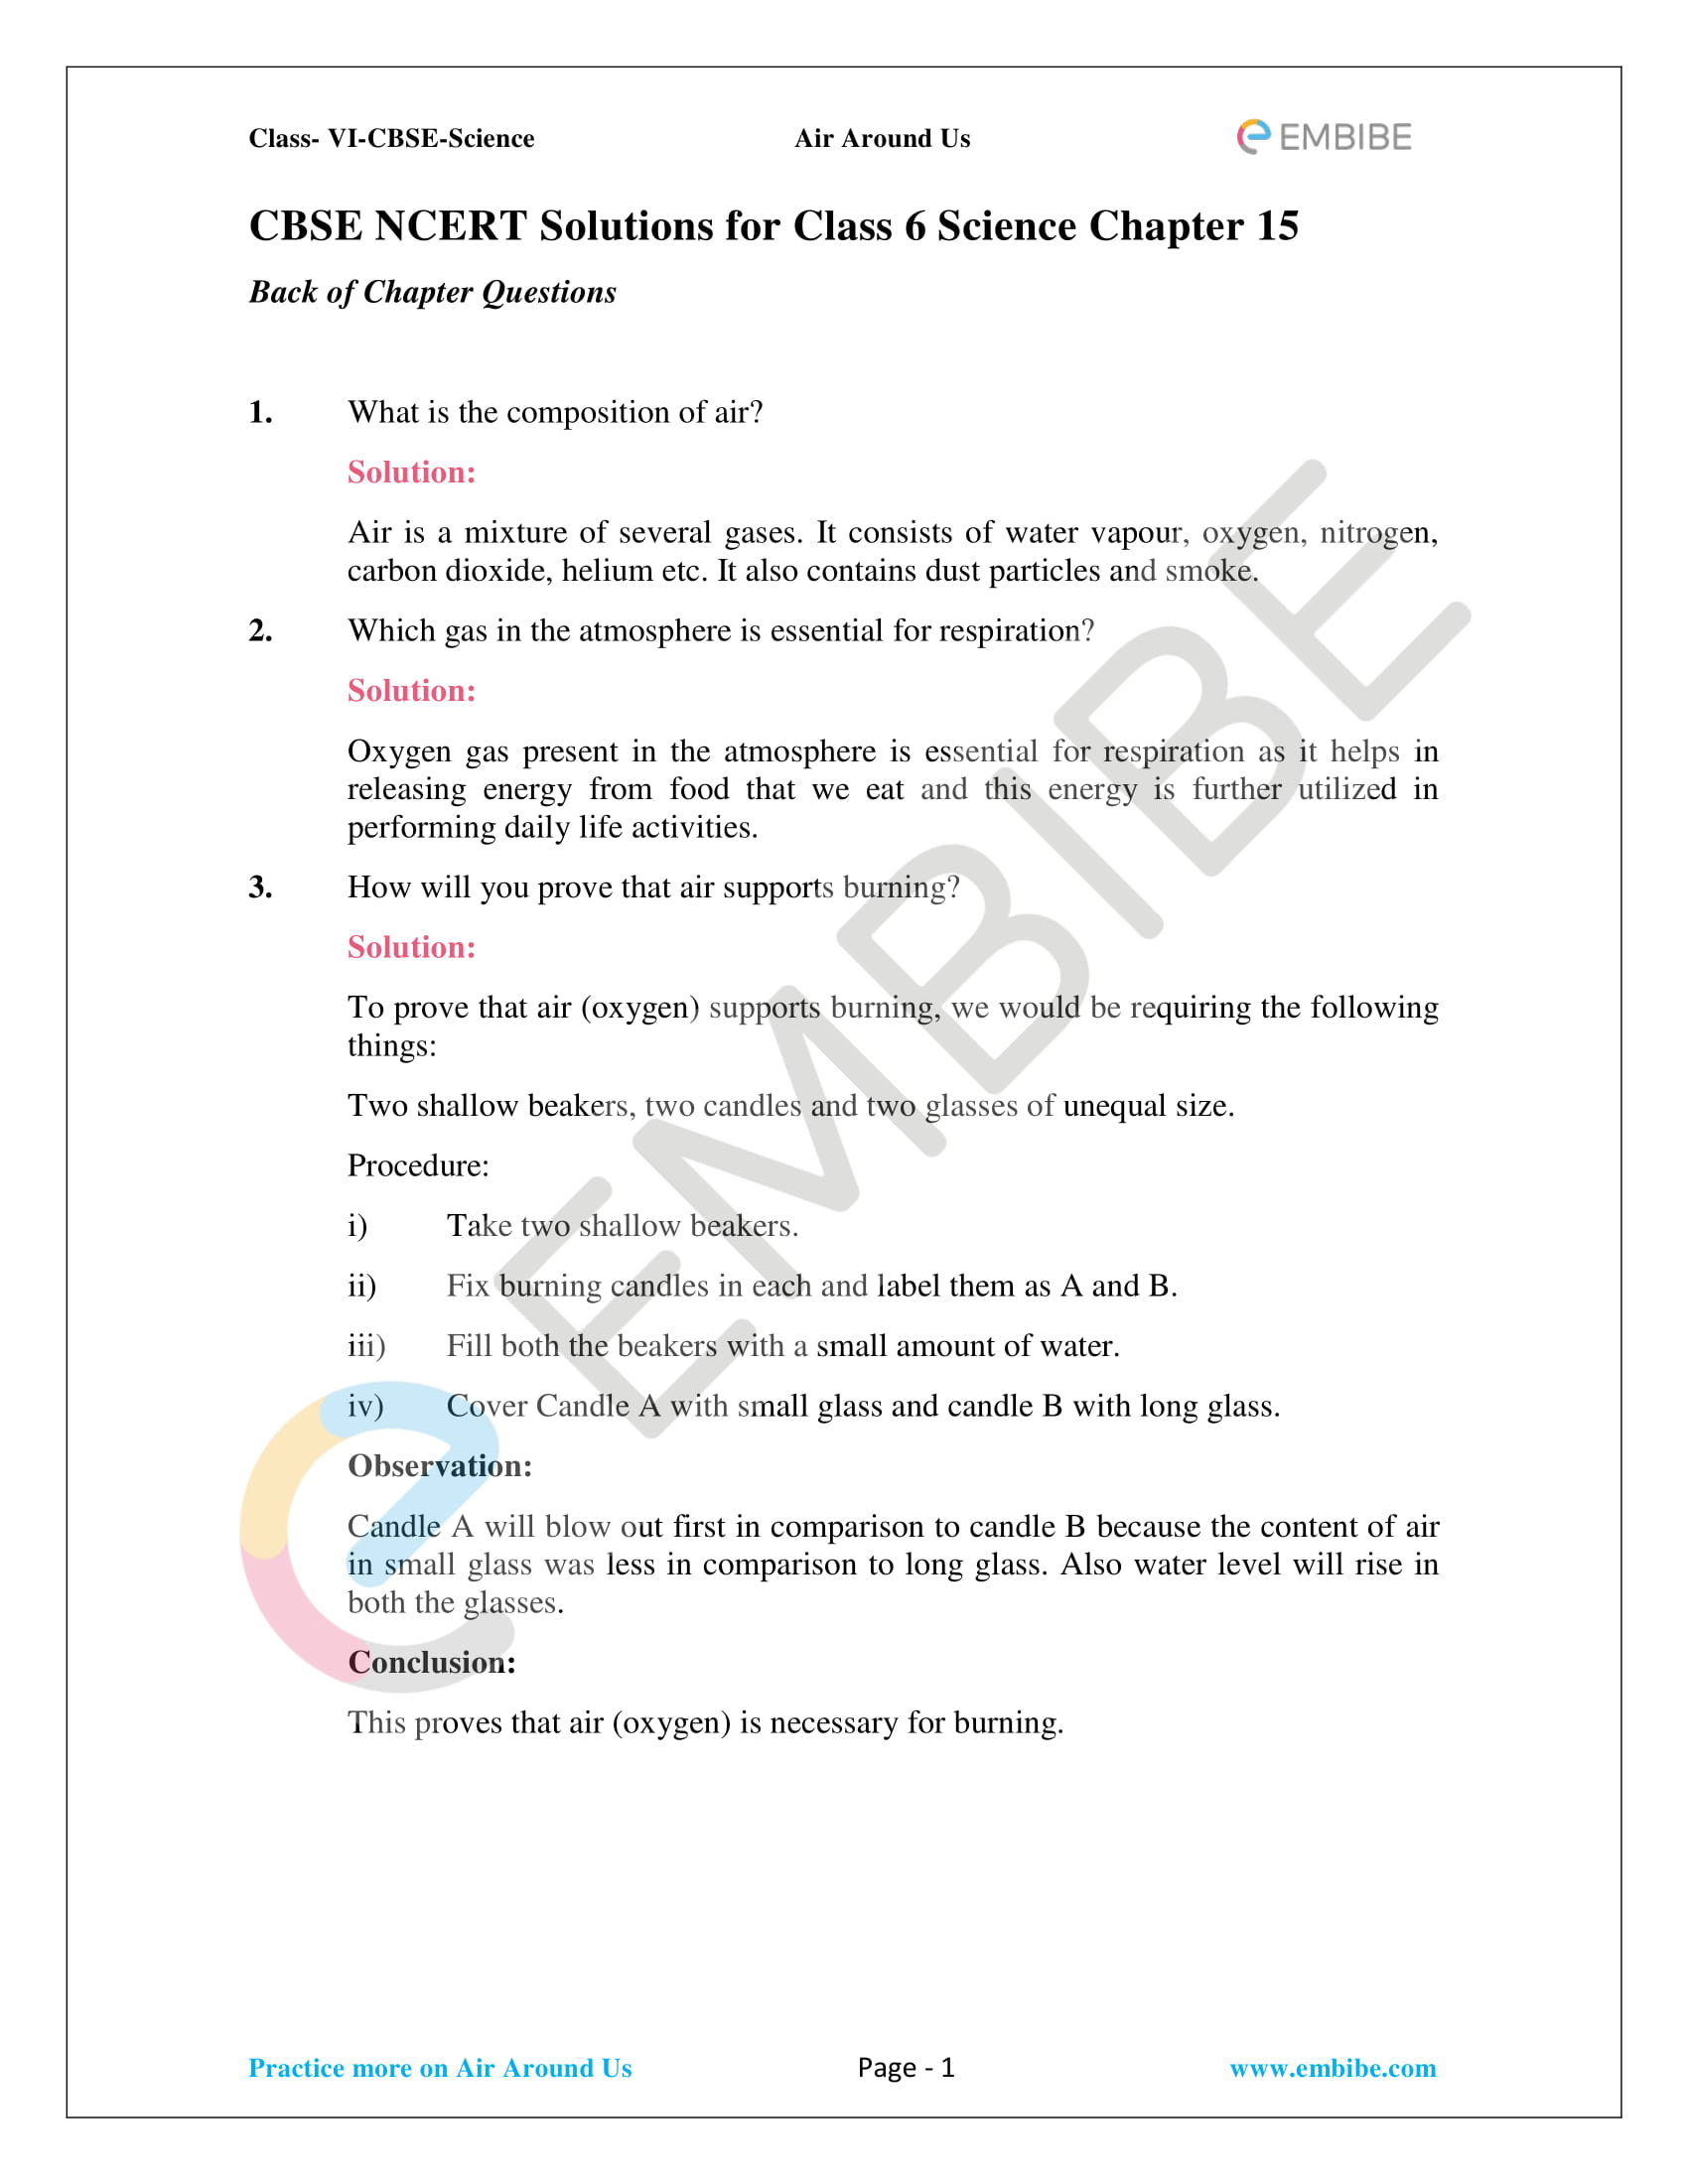 Class 6 Science Chapter 1 Worksheet